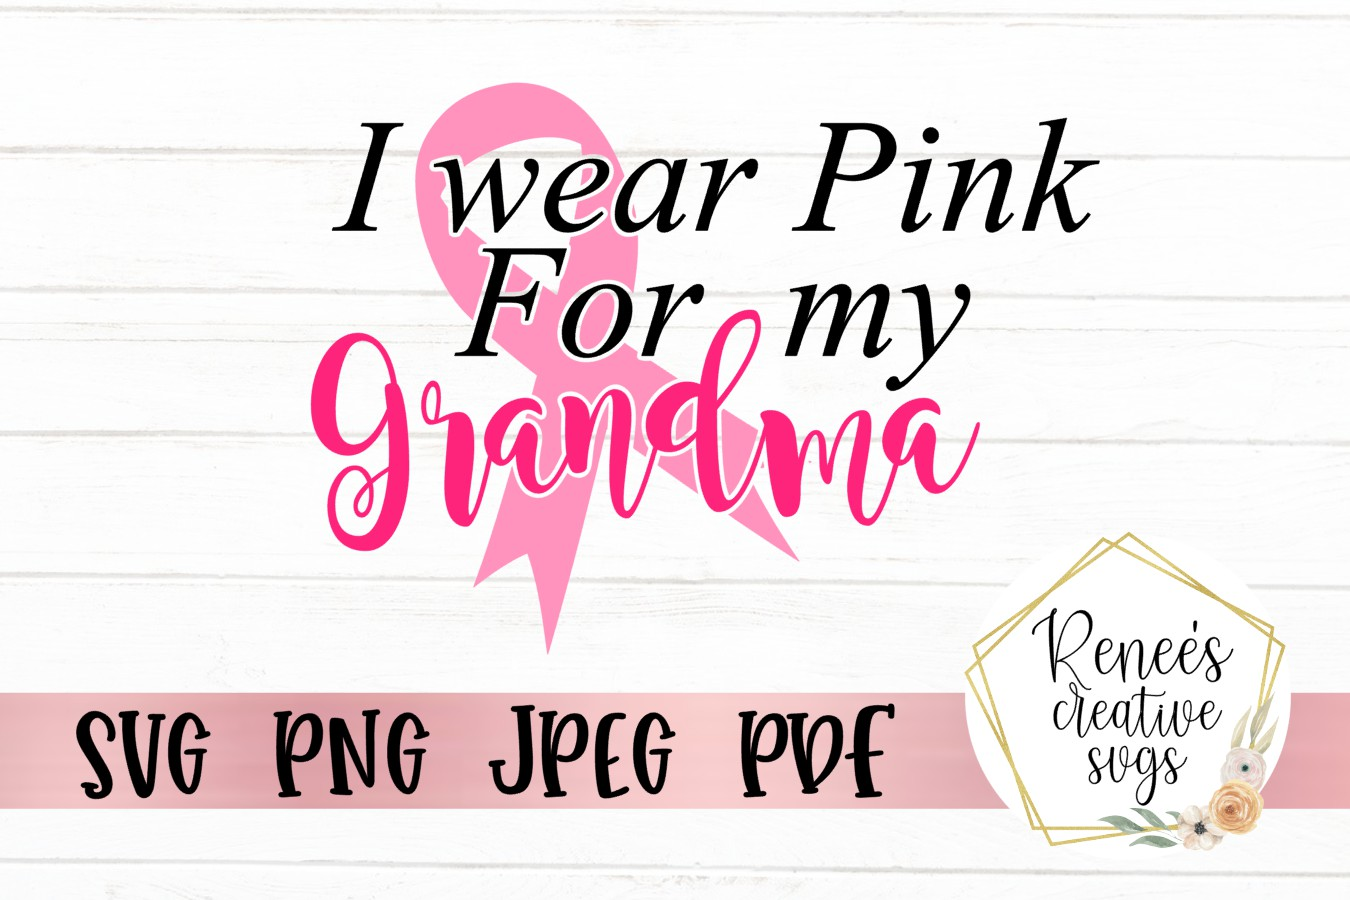 Download Free I Wear Pink For My Grandma Graphic By Reneescreativesvgs for Cricut Explore, Silhouette and other cutting machines.